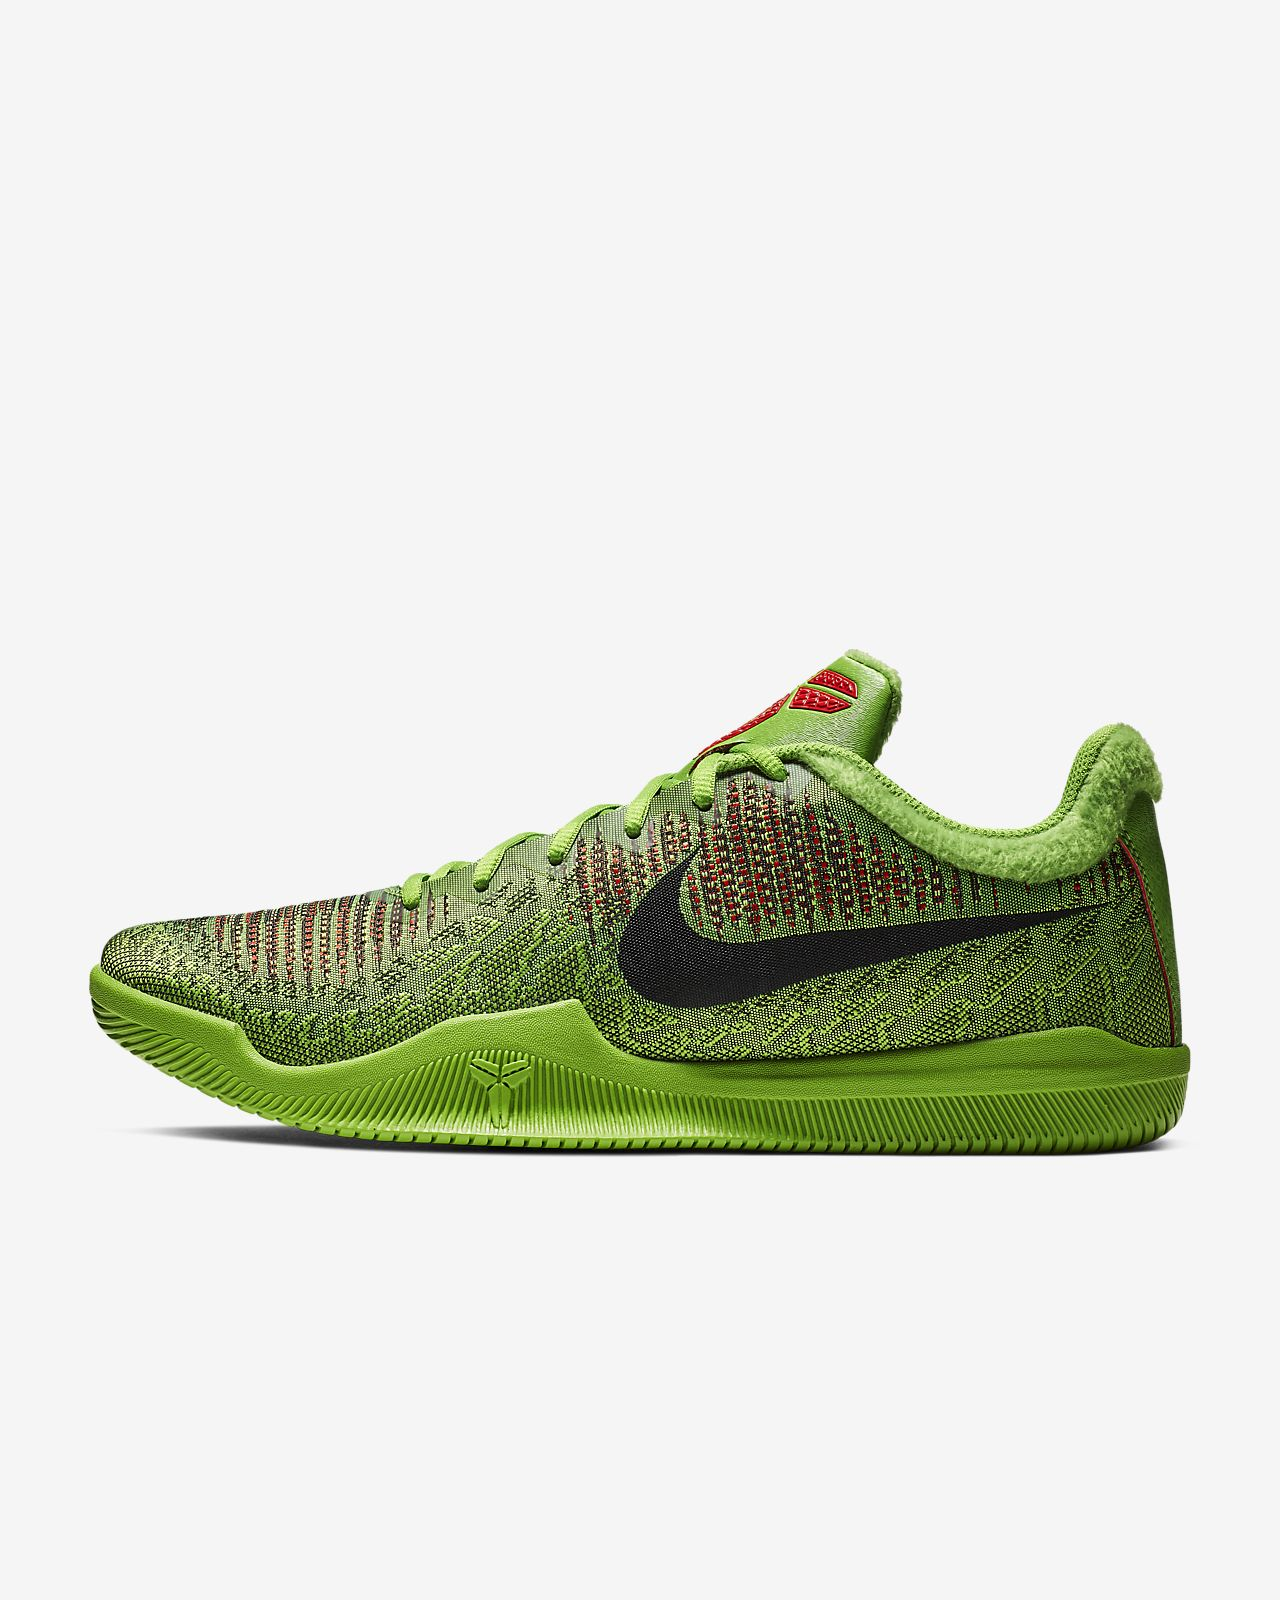 Nike Mamba Rage Men s Basketball Shoe. Nike.com ID 5132e1db0d